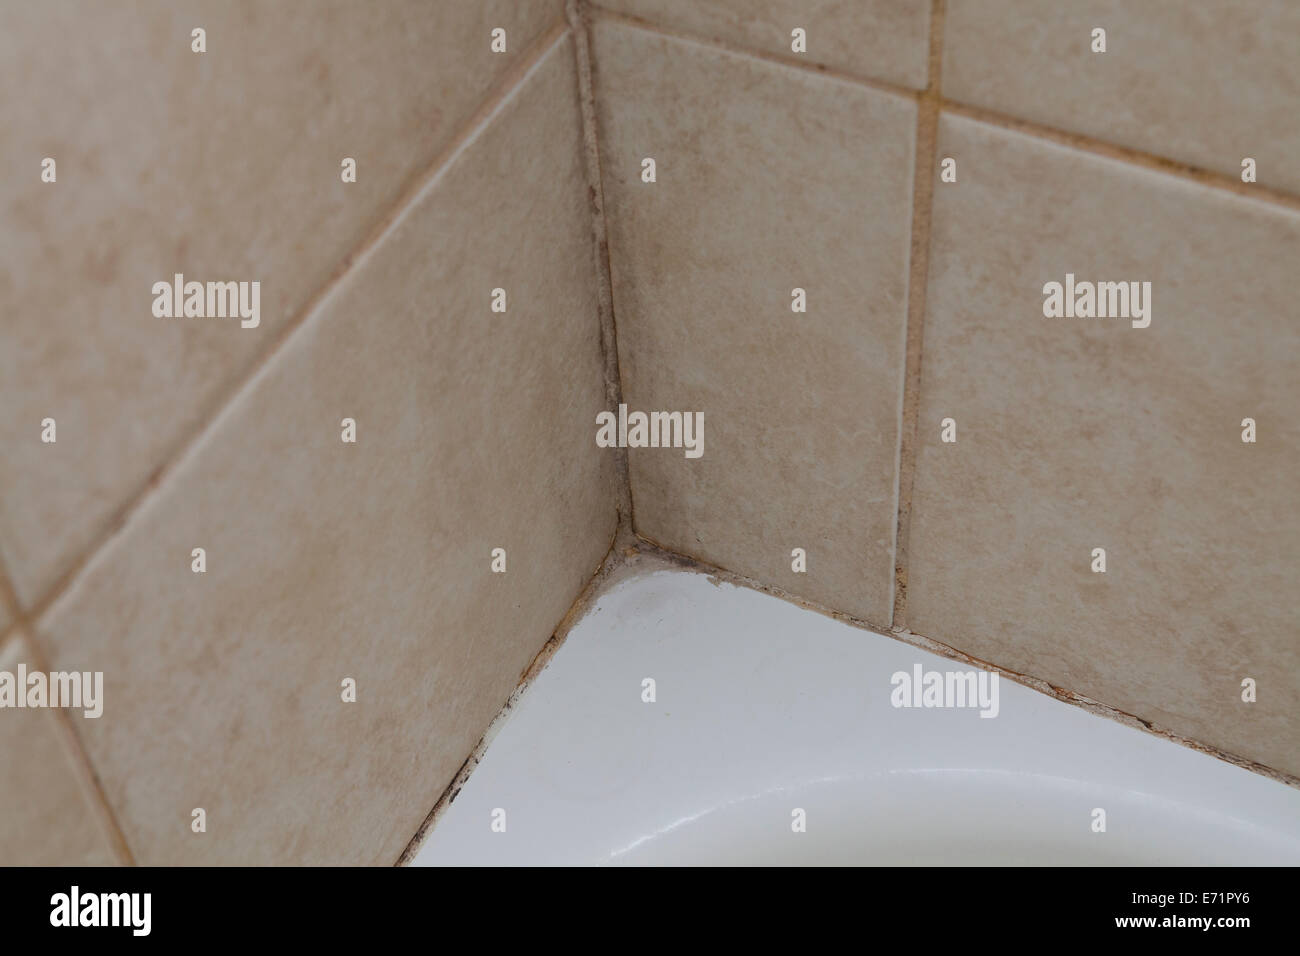 Dirty Bathroom Tiles And Grout